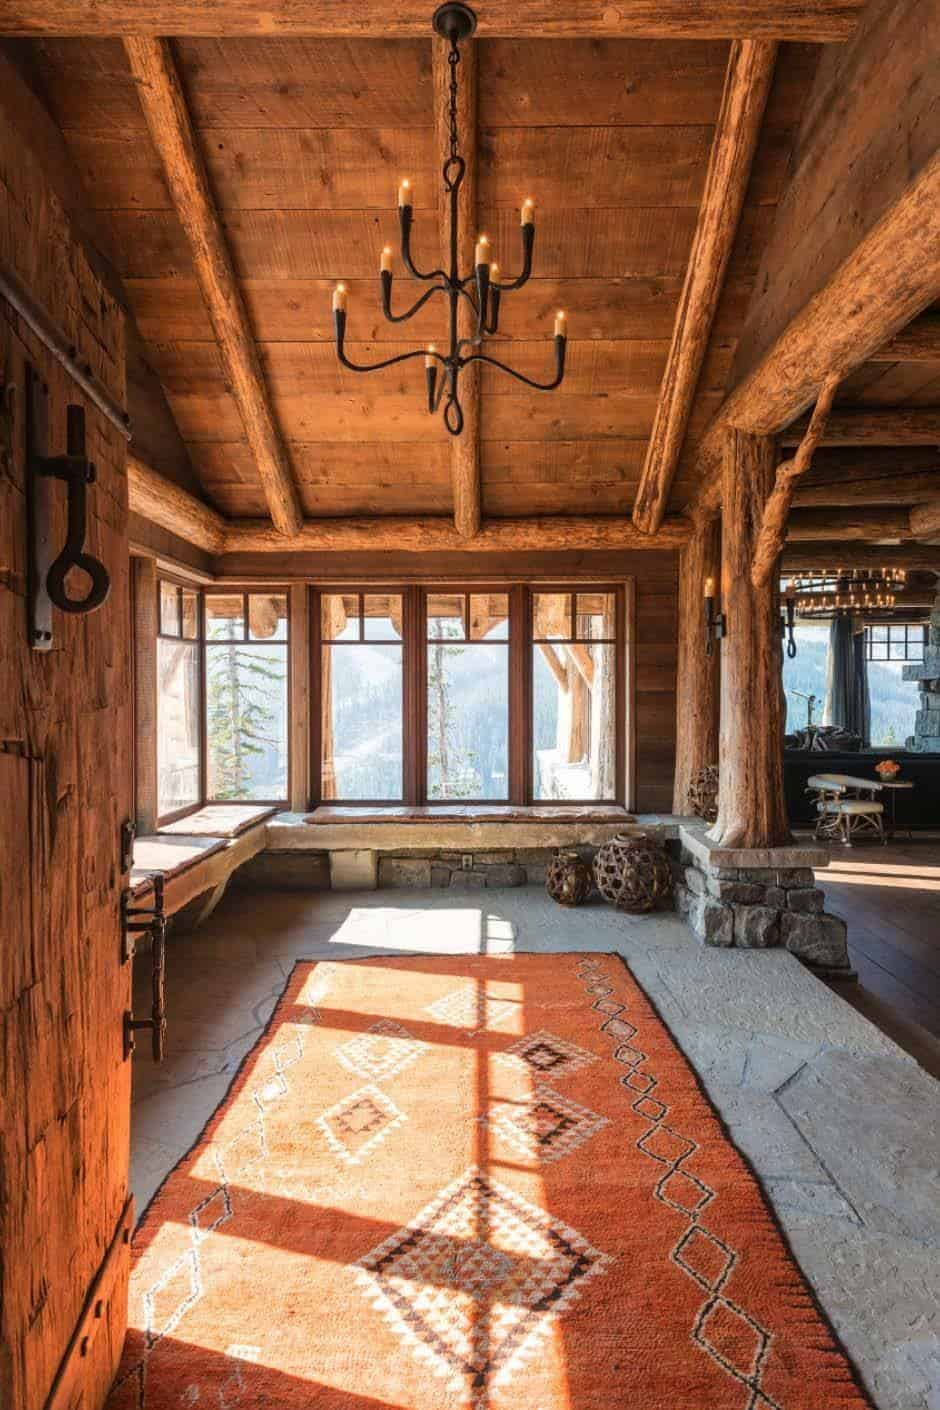 Rustic Mountain Home-Pearson Design Group-20-1 Kindesign